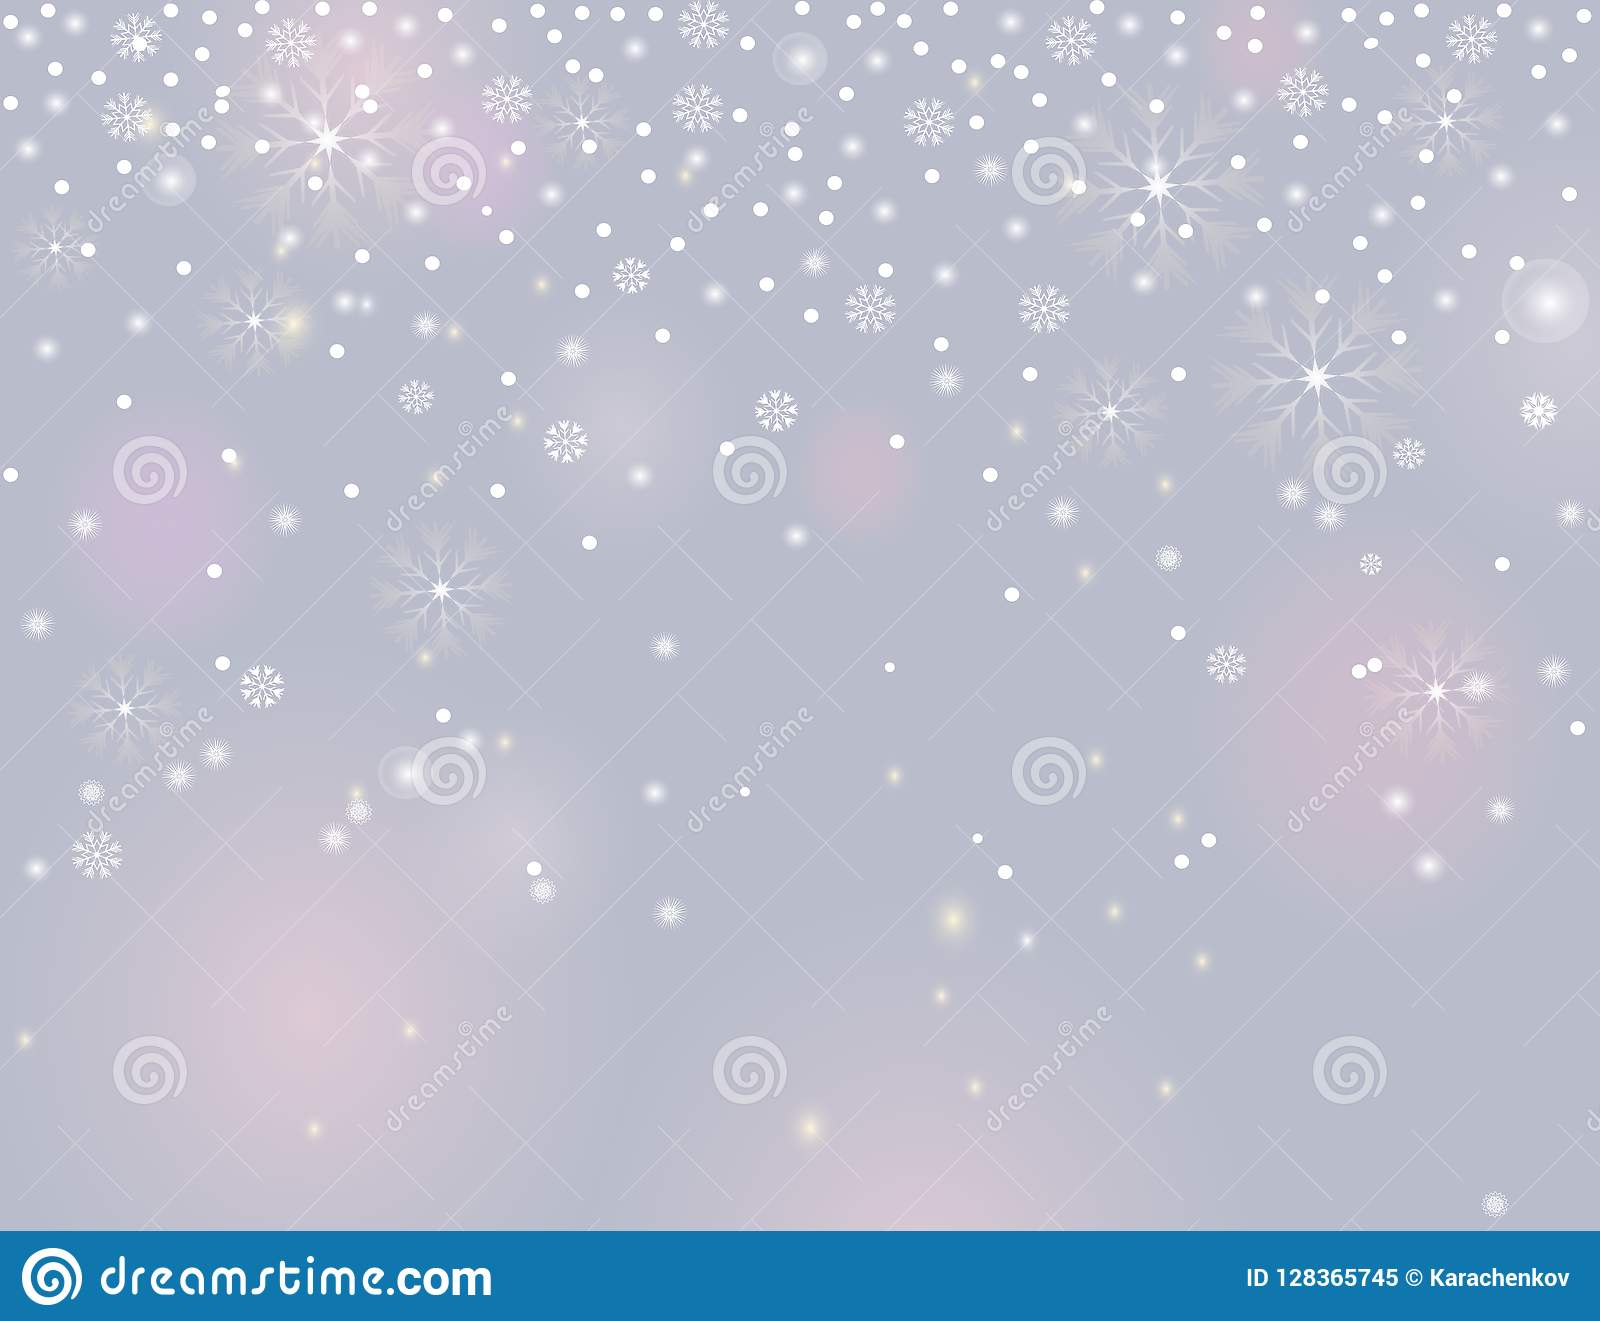 5e329c32a32a7 Falling snow border on a light silver grey background. Abstract winter  lights blurry background for your Merry Christmas and Happy New Year design.